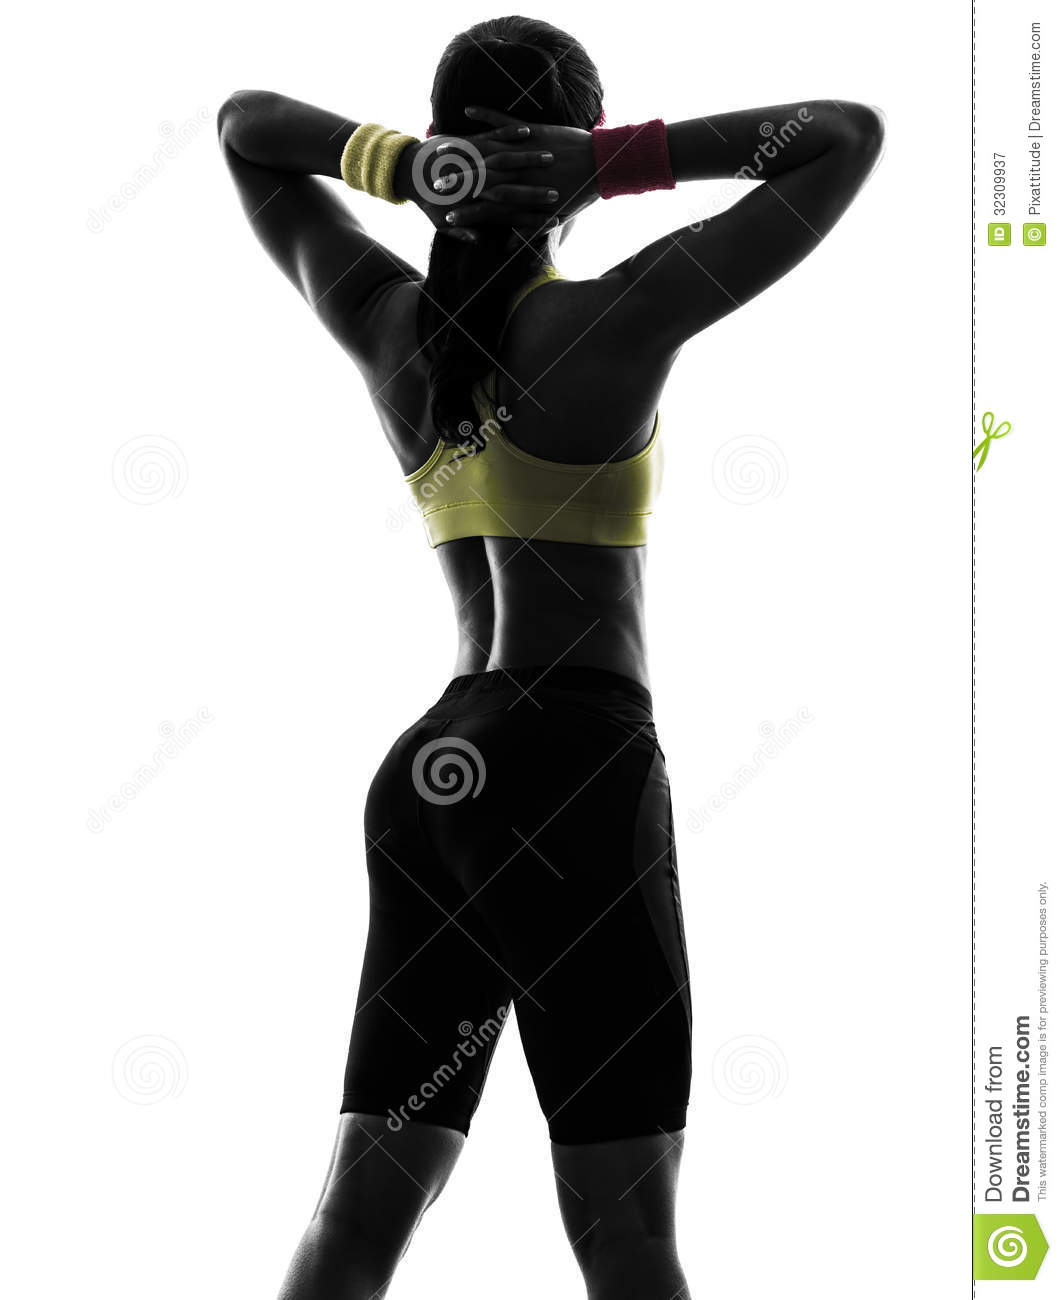 Woman exercising fitness arms behind head silhouette rear view